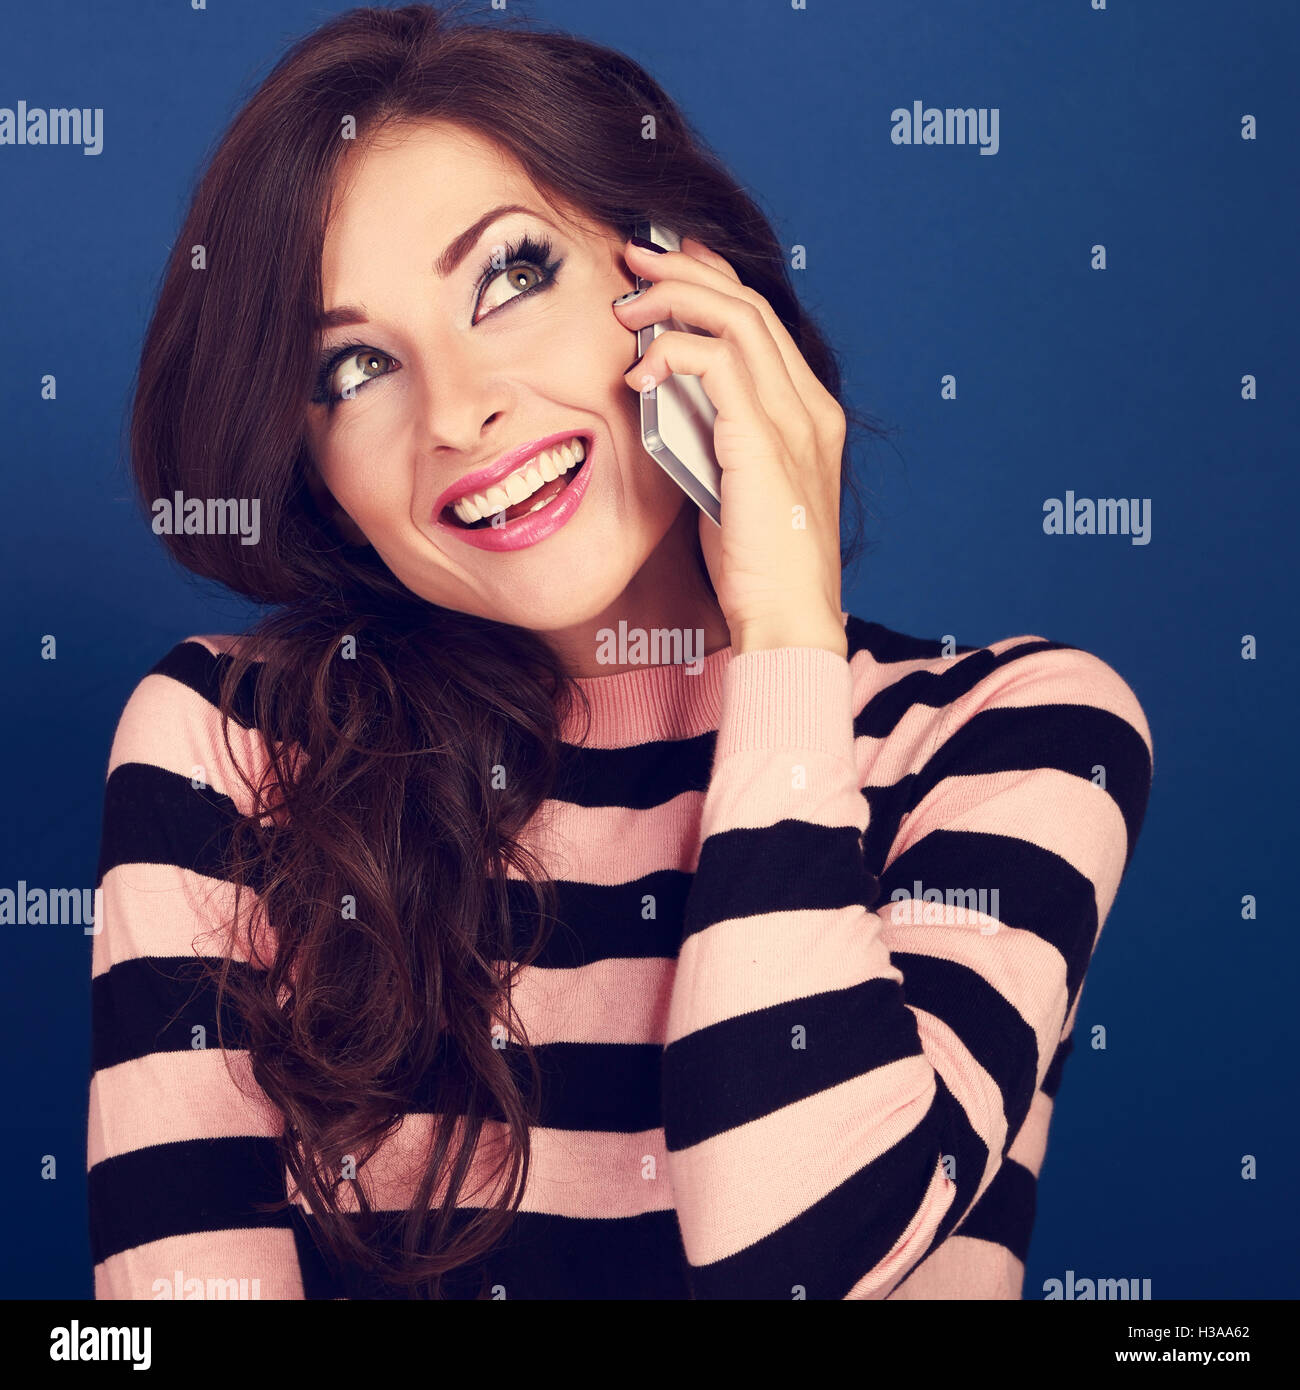 Beautiful makeup excited woman talking on mobile phone and with thoughtful look looking up on bright blue background. Stock Photo